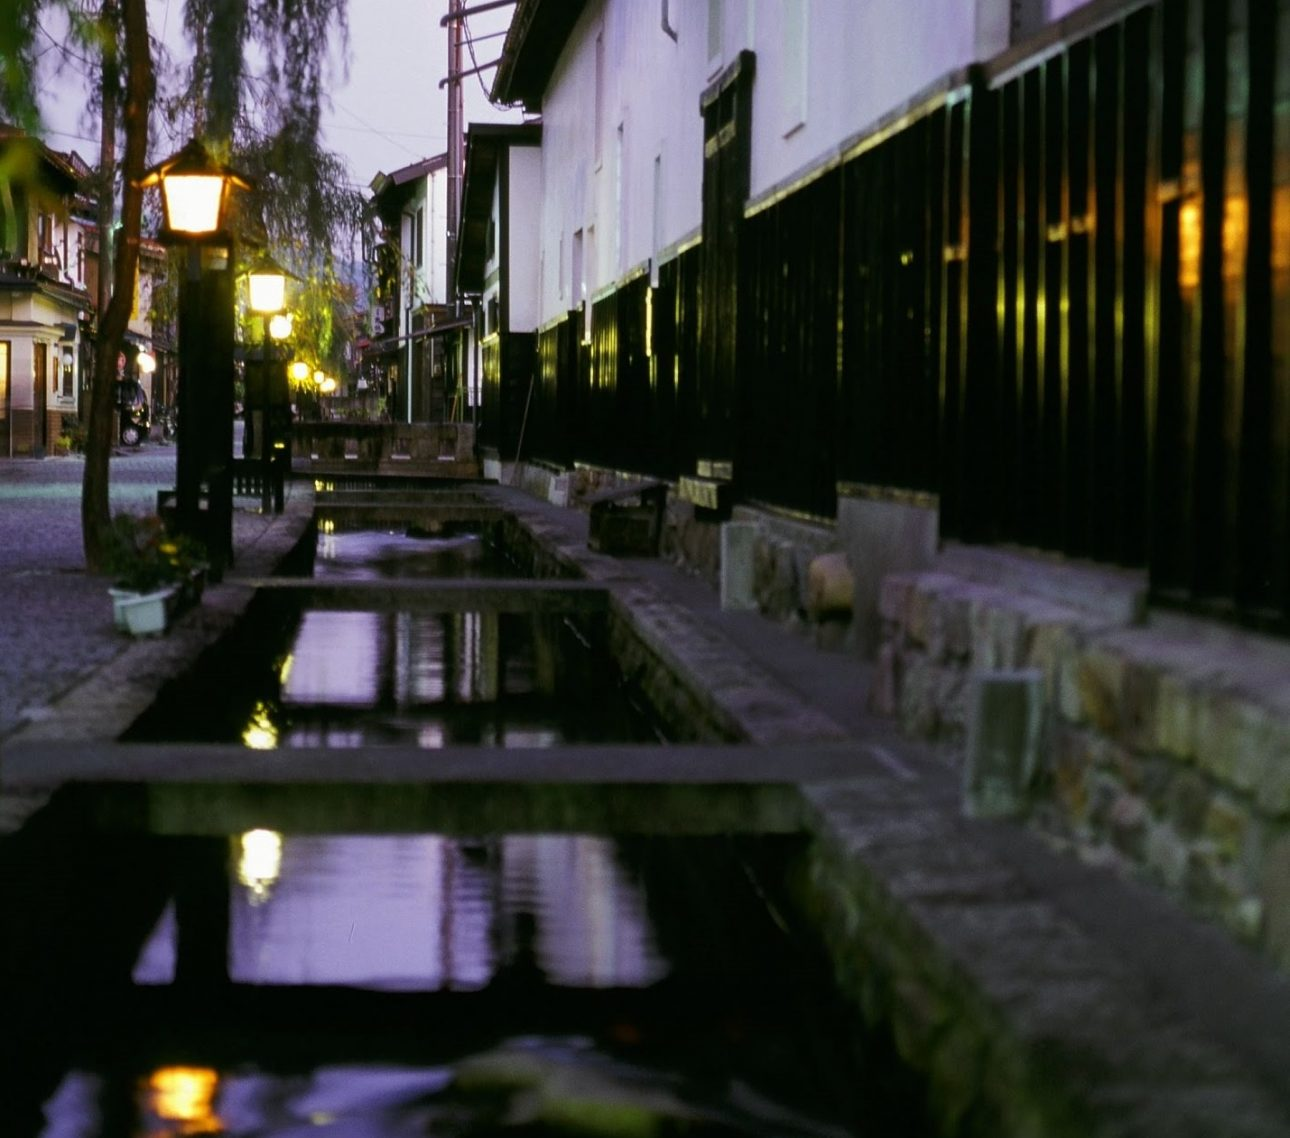 Seto River Canal and White-Walled Storehouses3